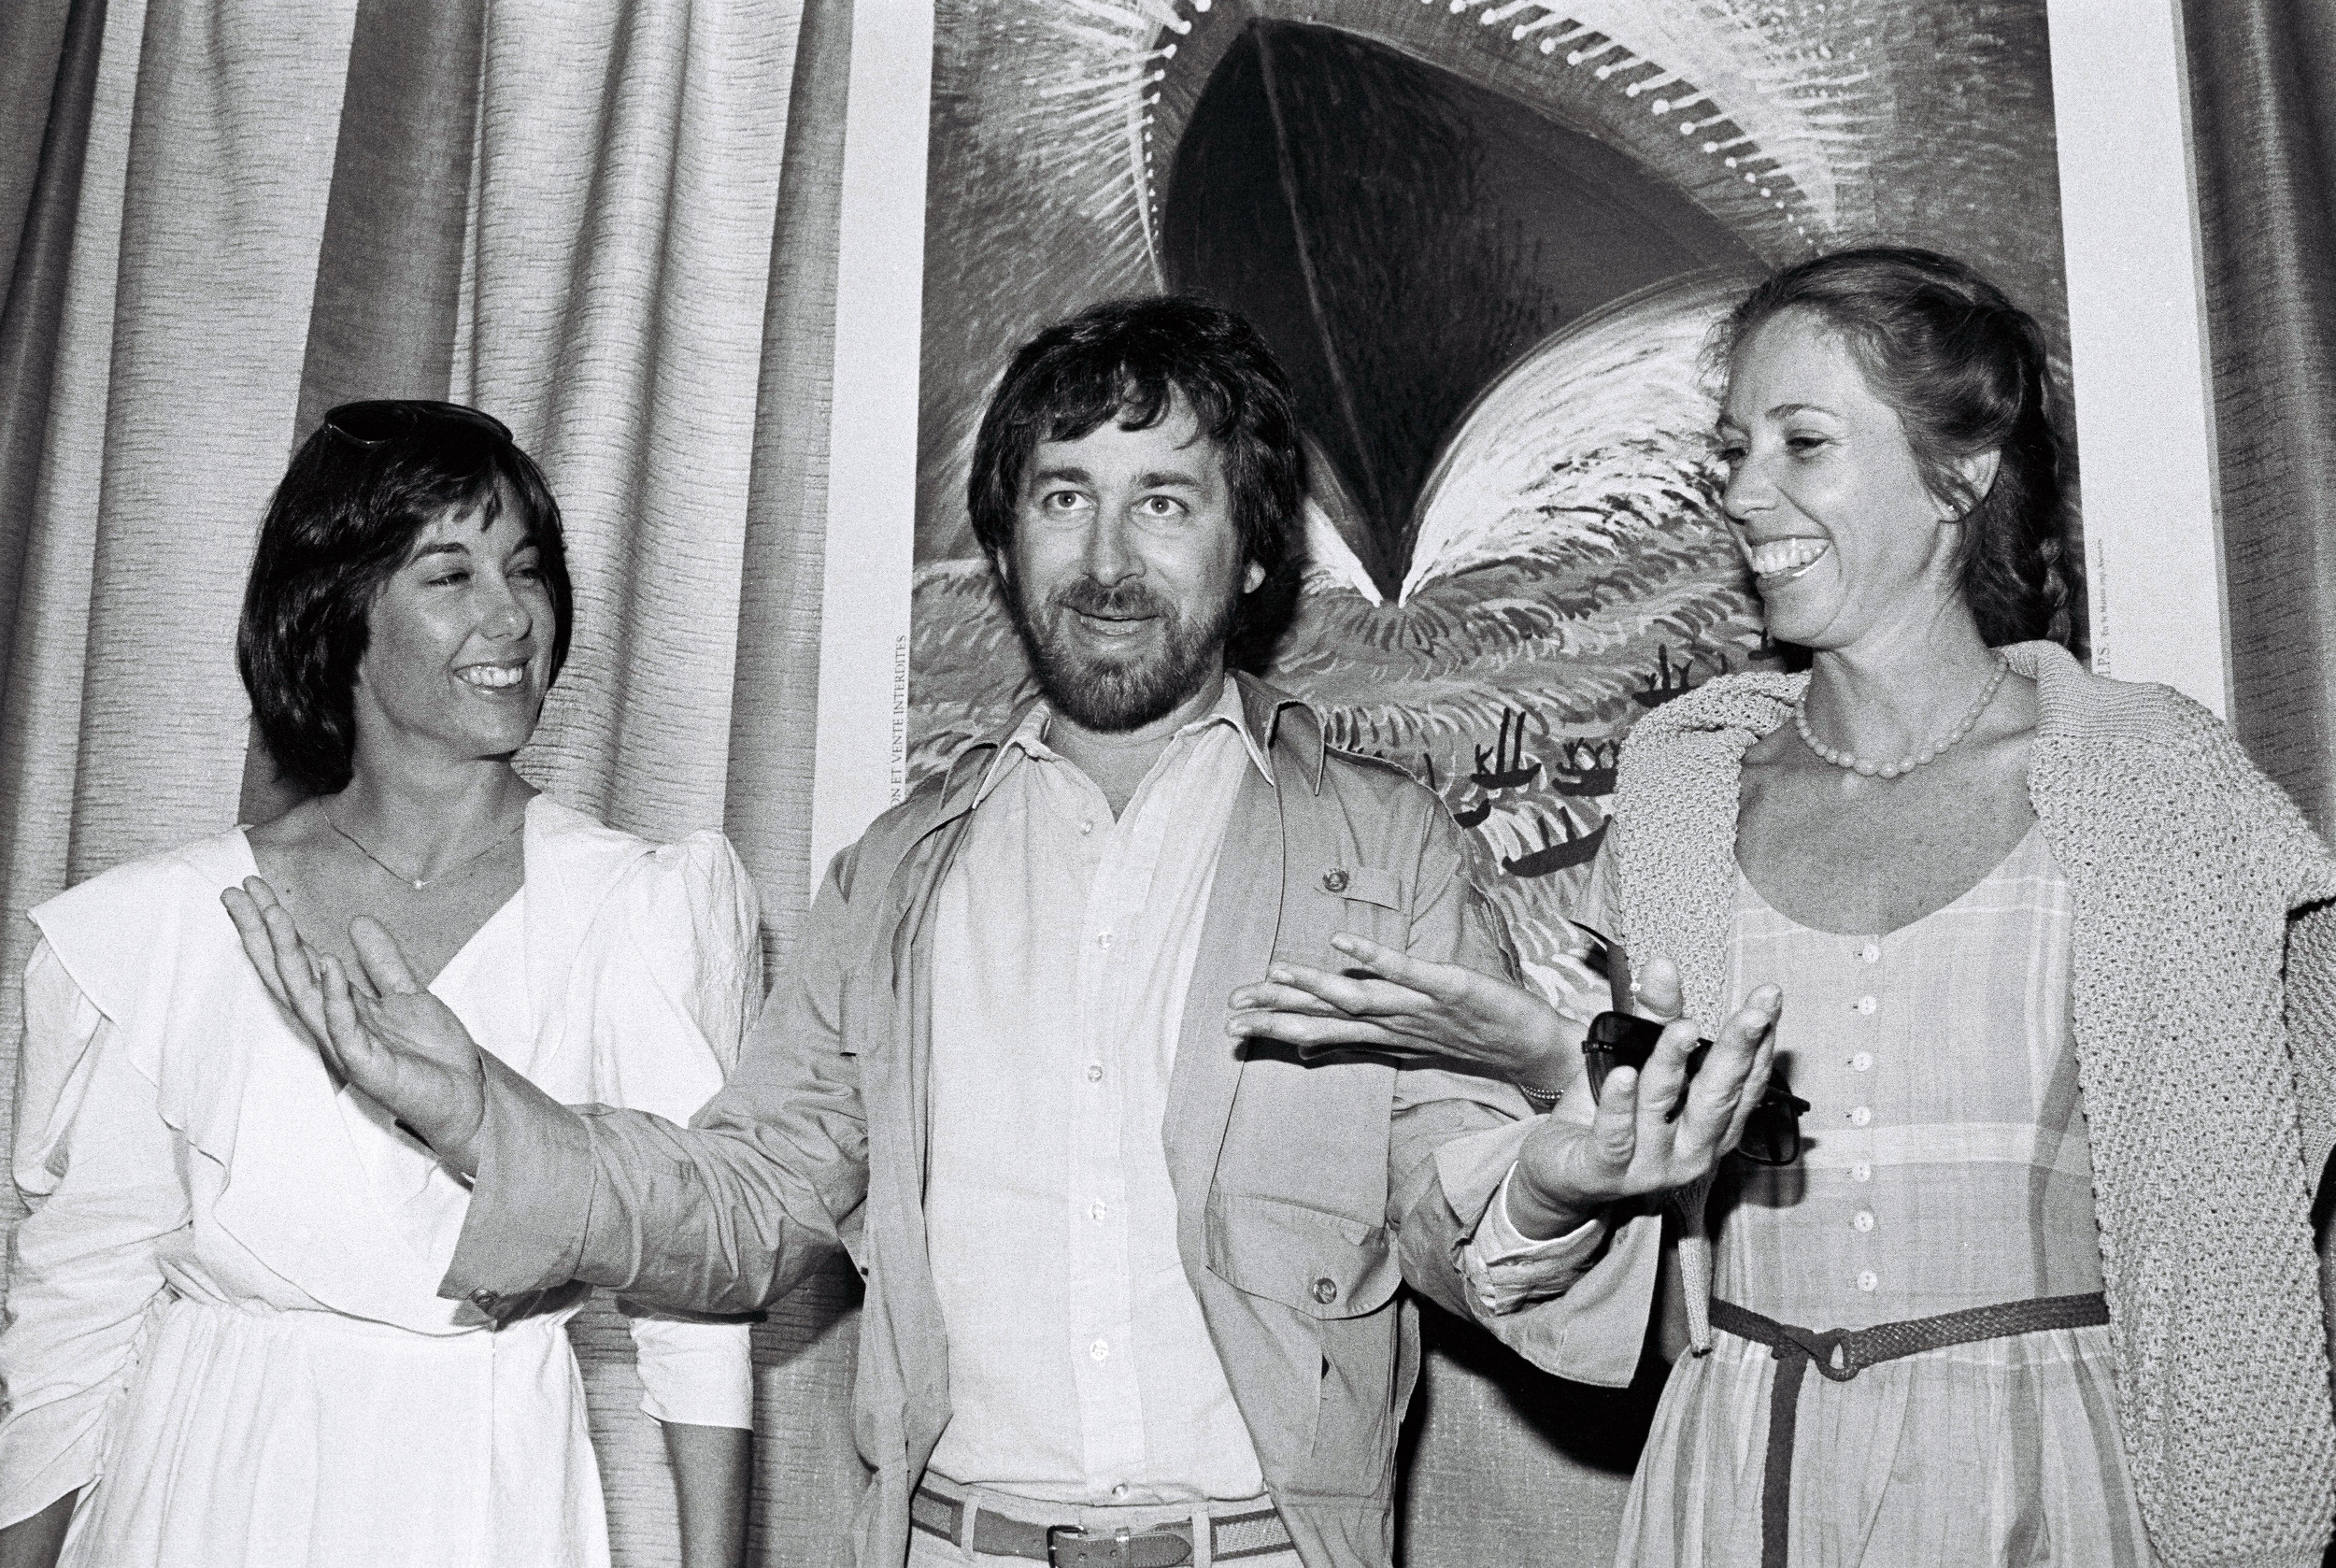 Director Steven Spielberg (C) poses with producer Kathleen Kennedy (L) and screenwriter Melissa Mathison (R) at the 35th Cannes Film Festival, during a photocall for his film 'E.T. the Extra-Terrestrial' in 1982.